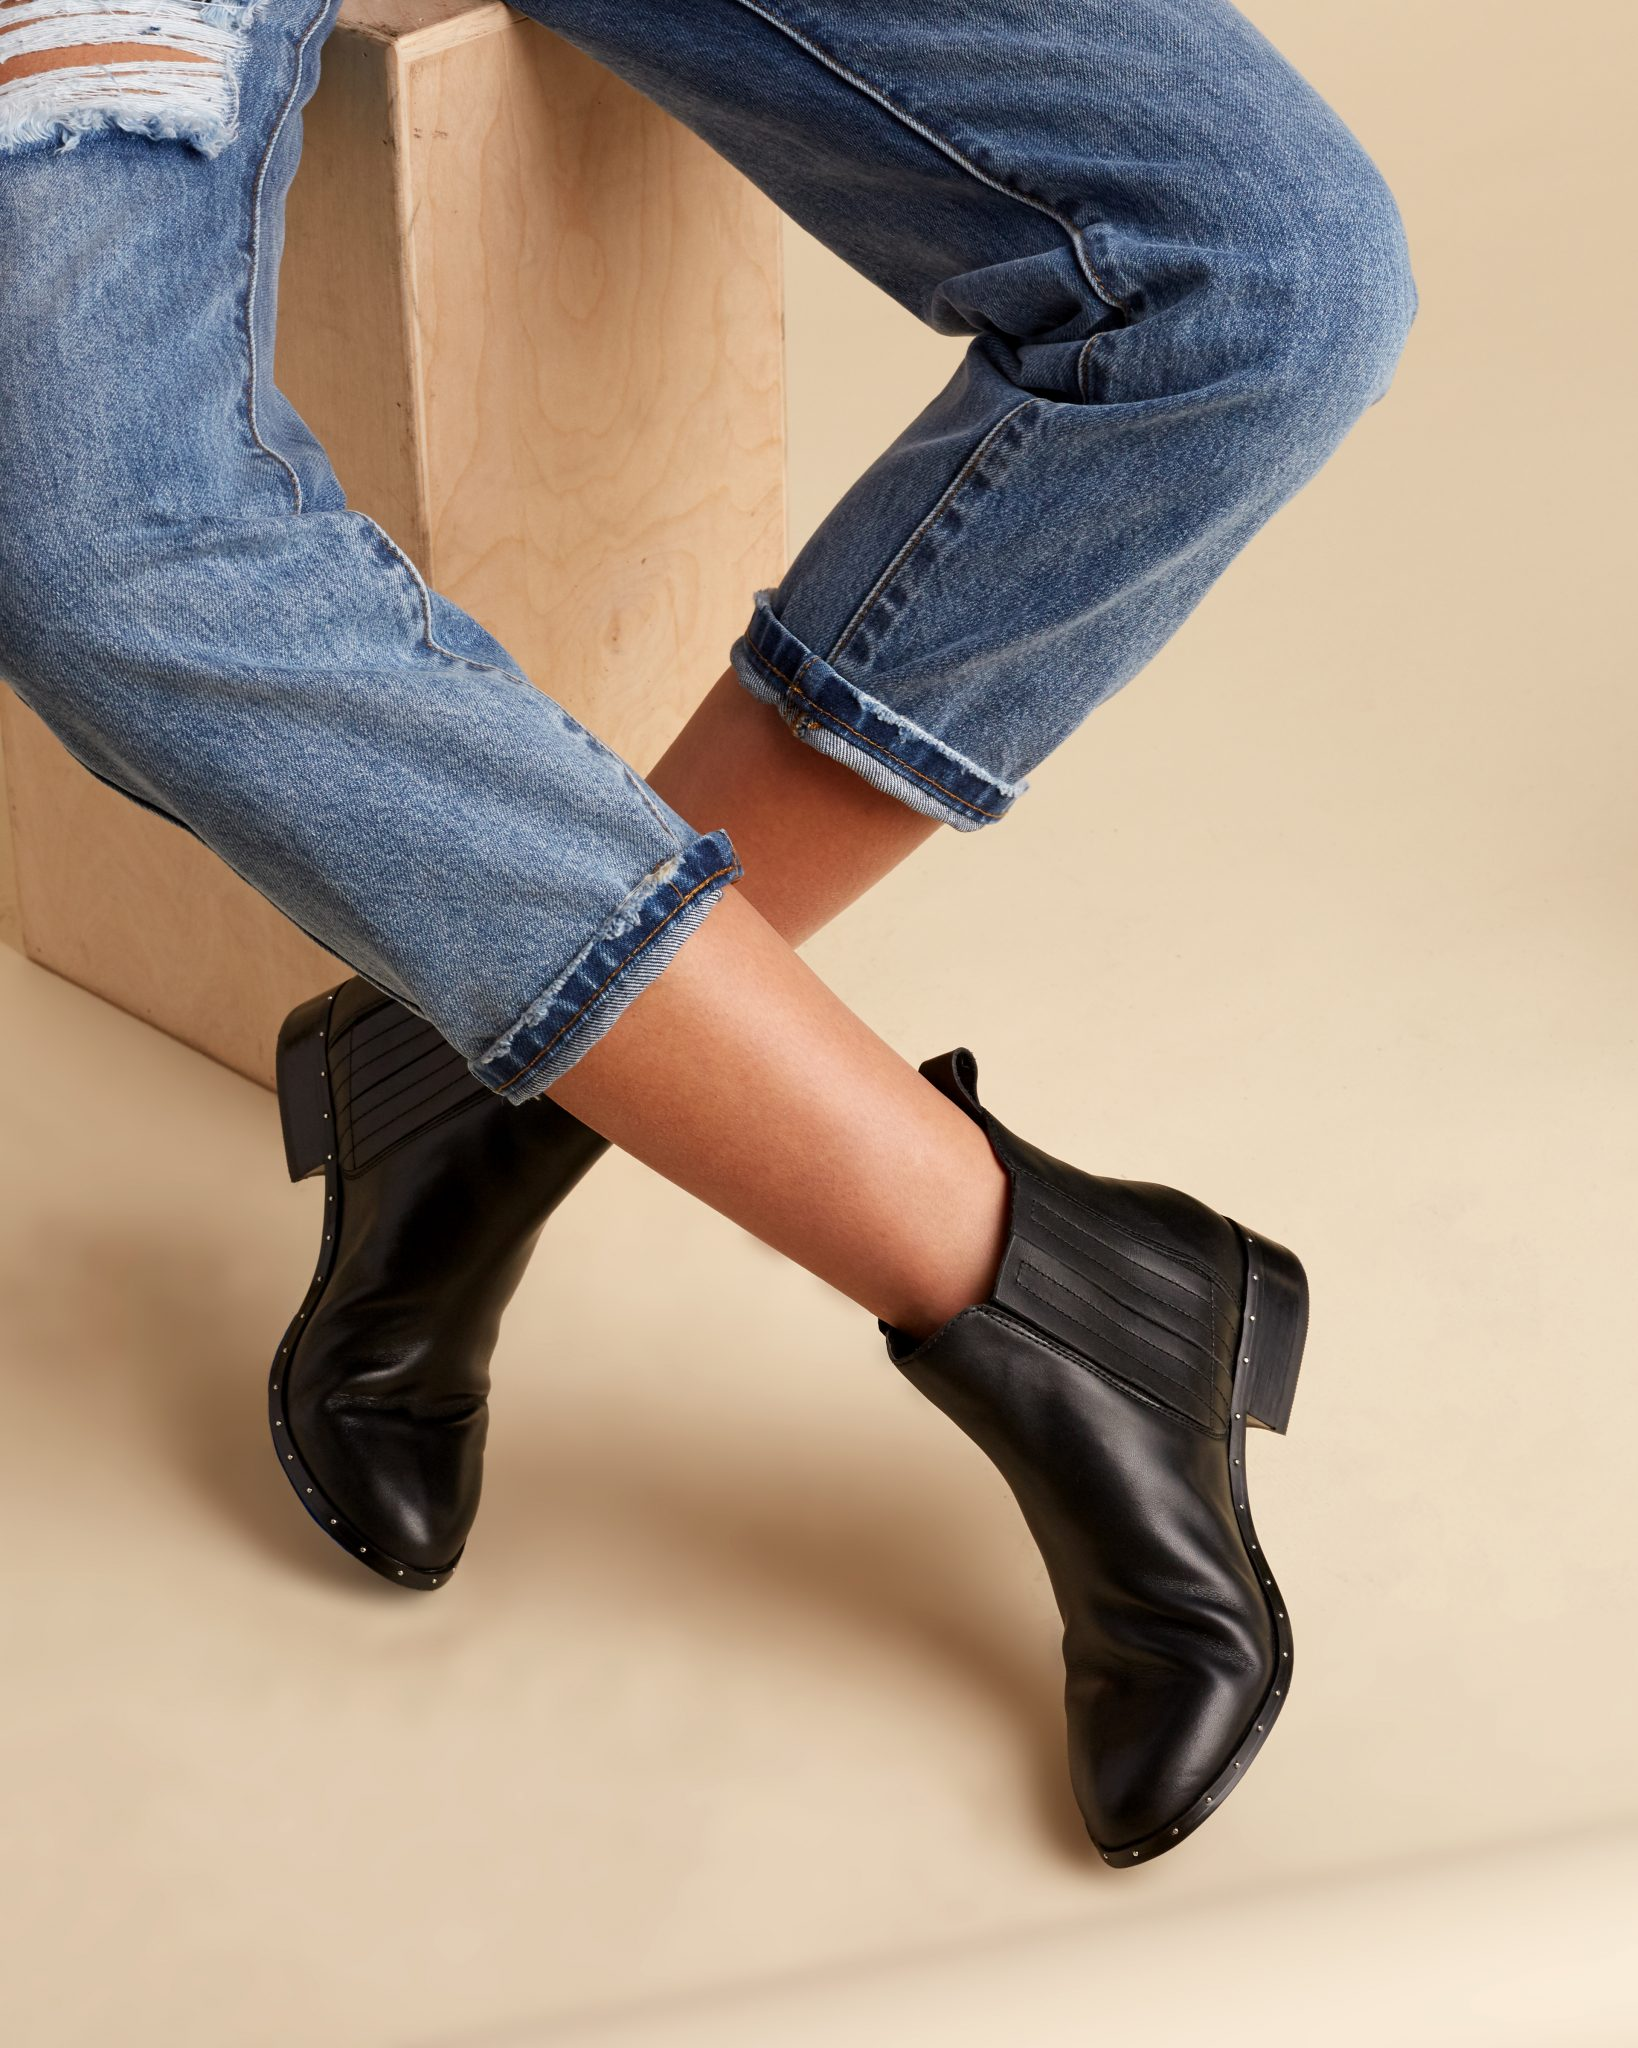 Shop Tobi Black Boots & More